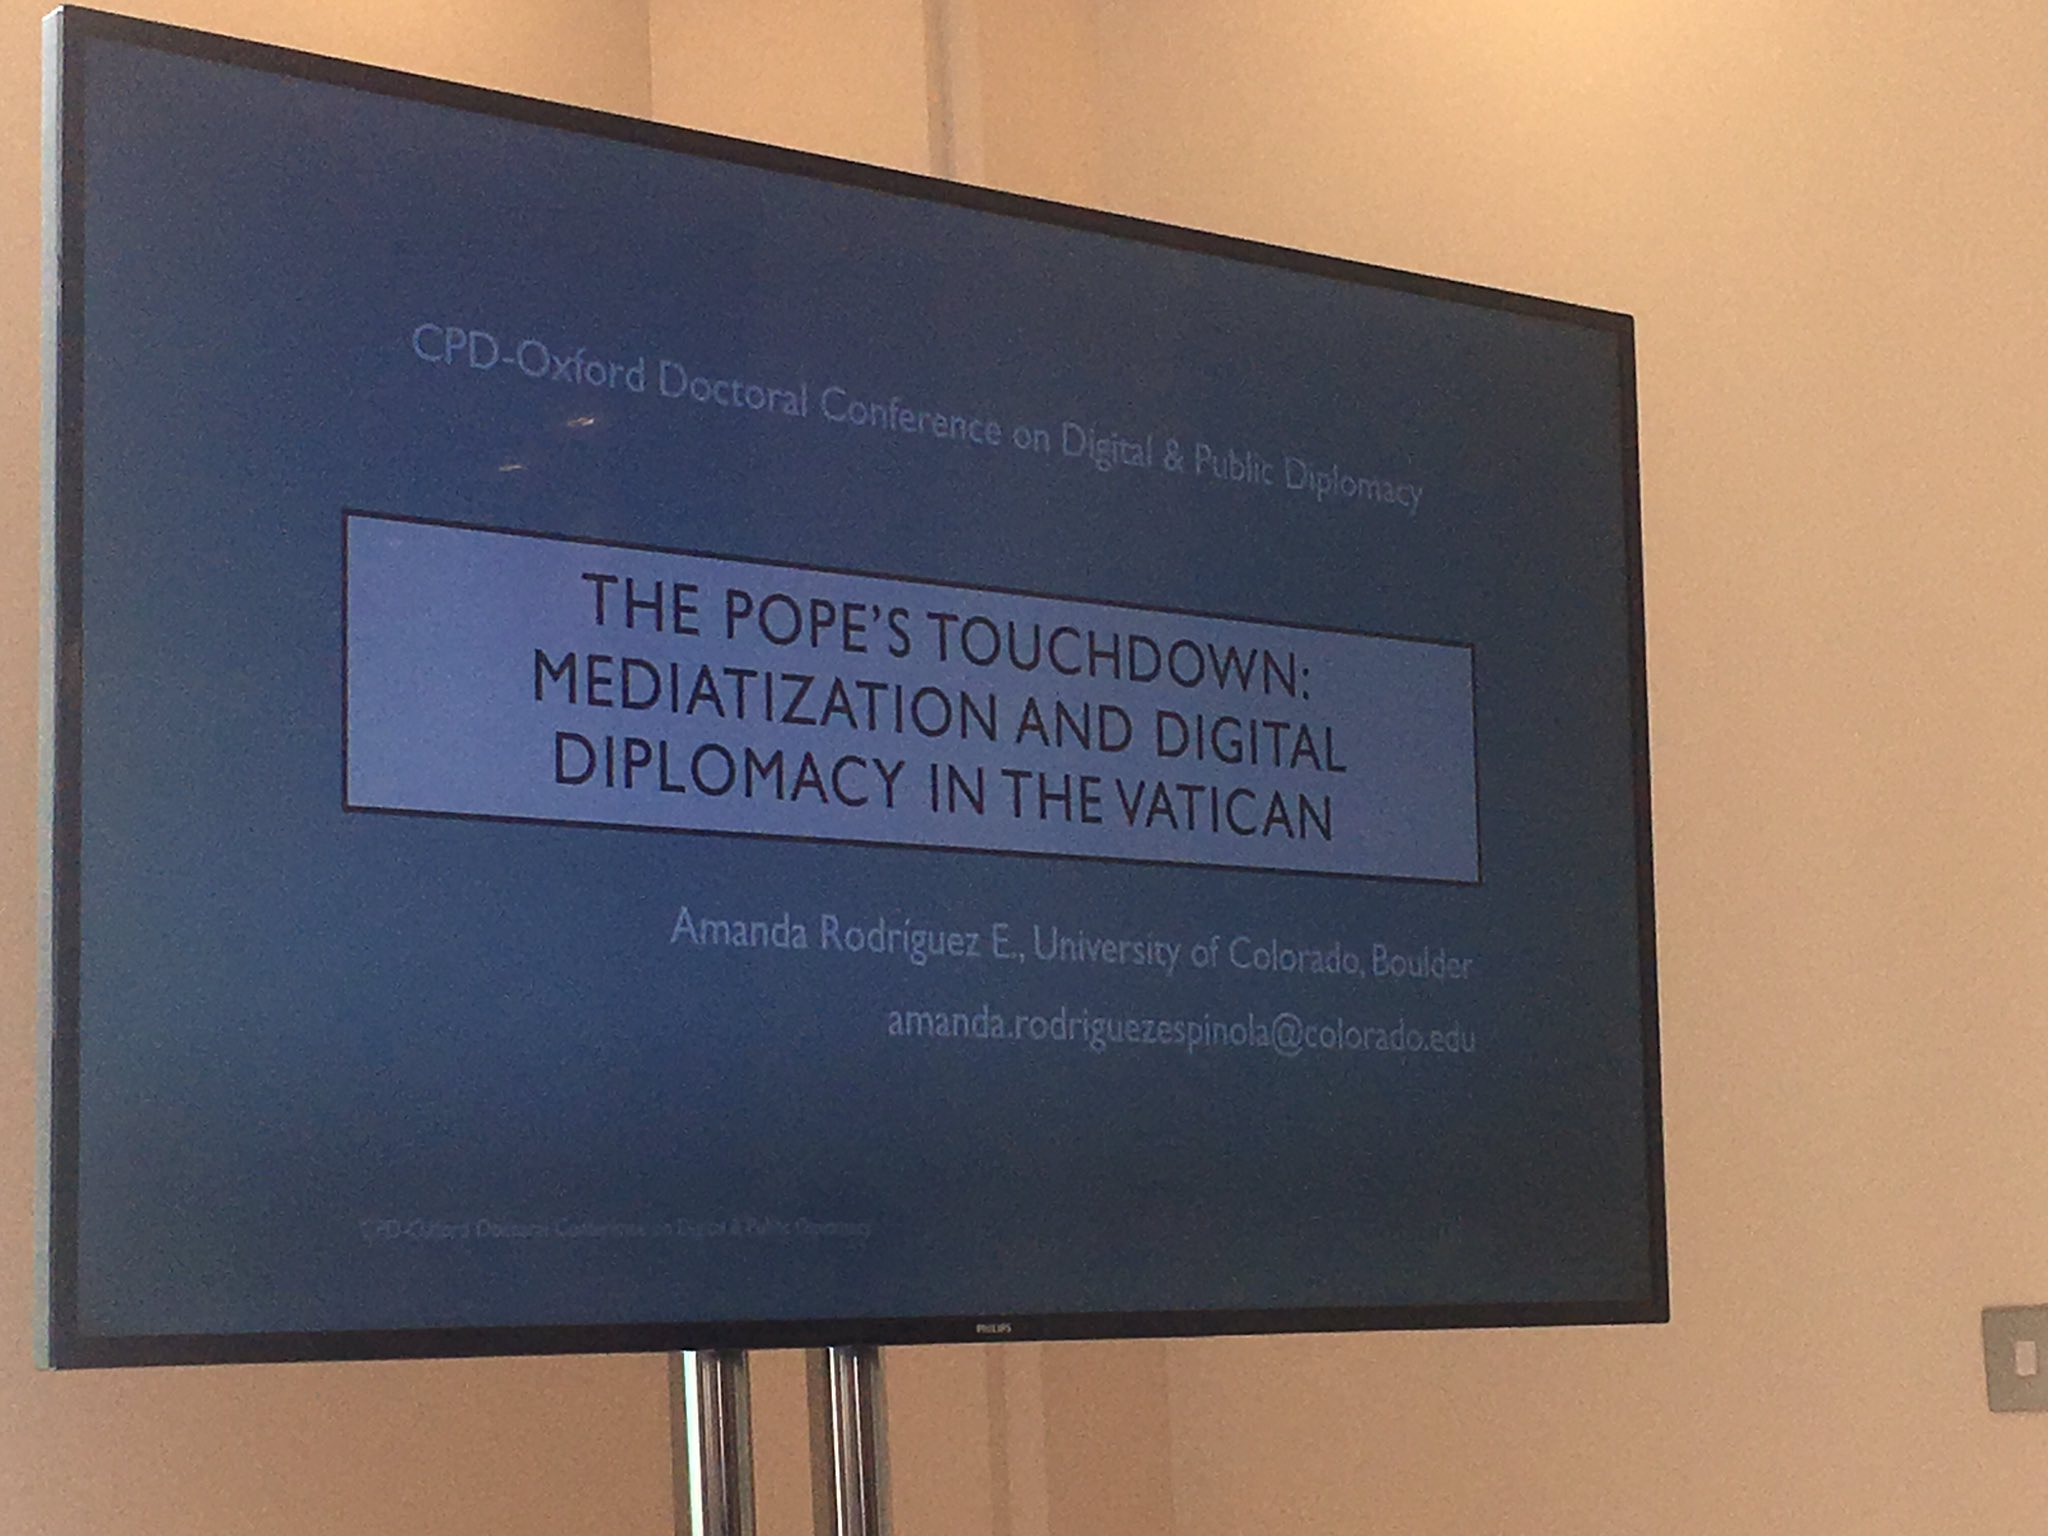 @Pontifex is making an impact with his faith based #DigitalDiplomacy. Great discussion here at #oxfordCPD17 https://t.co/BH545VwvXT